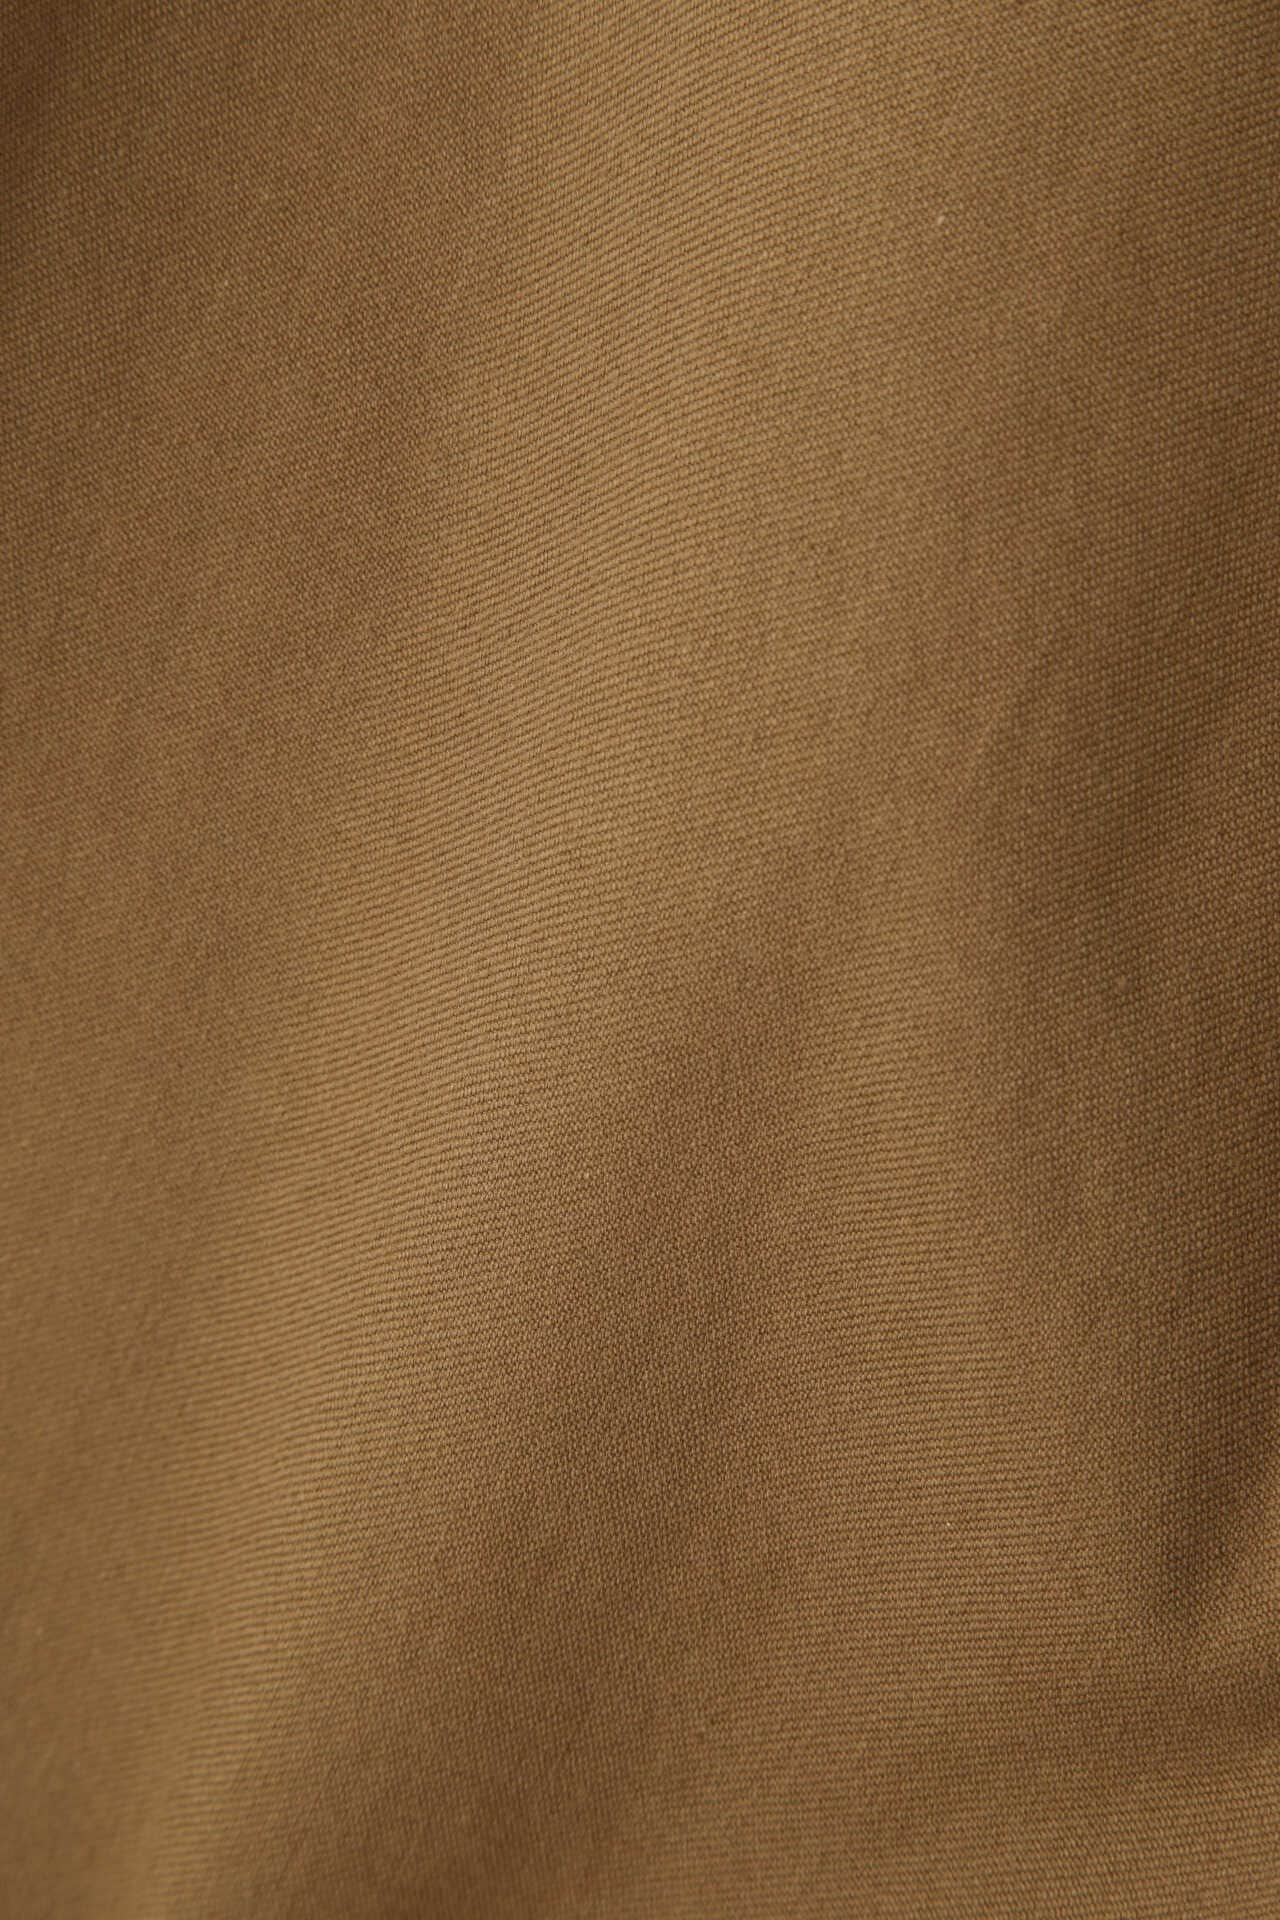 WASHED COTTON TWILL7